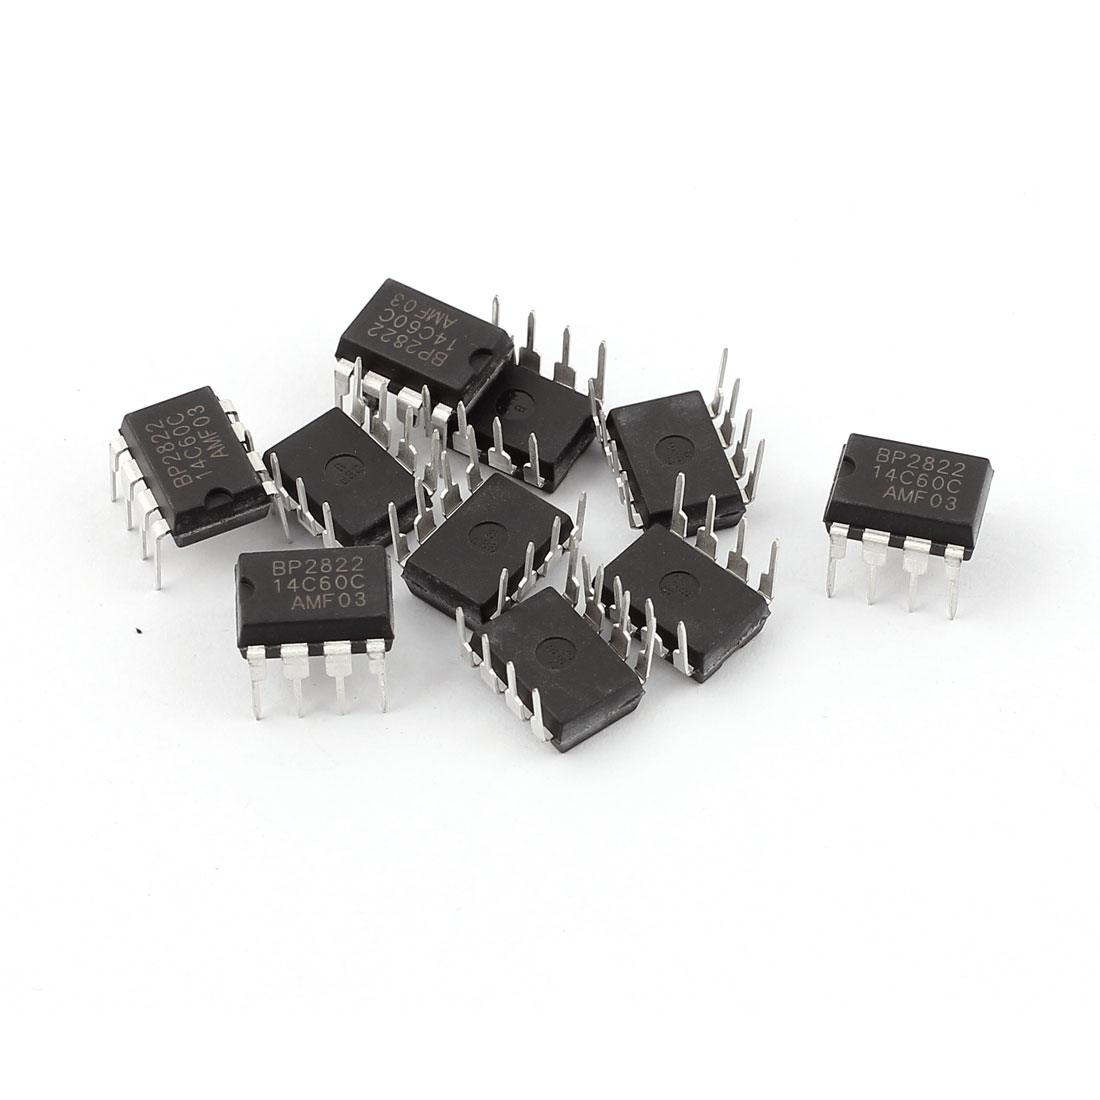 10Pcs BP2822 Replacement DIP-8 Package Type SMT LED Driver IC